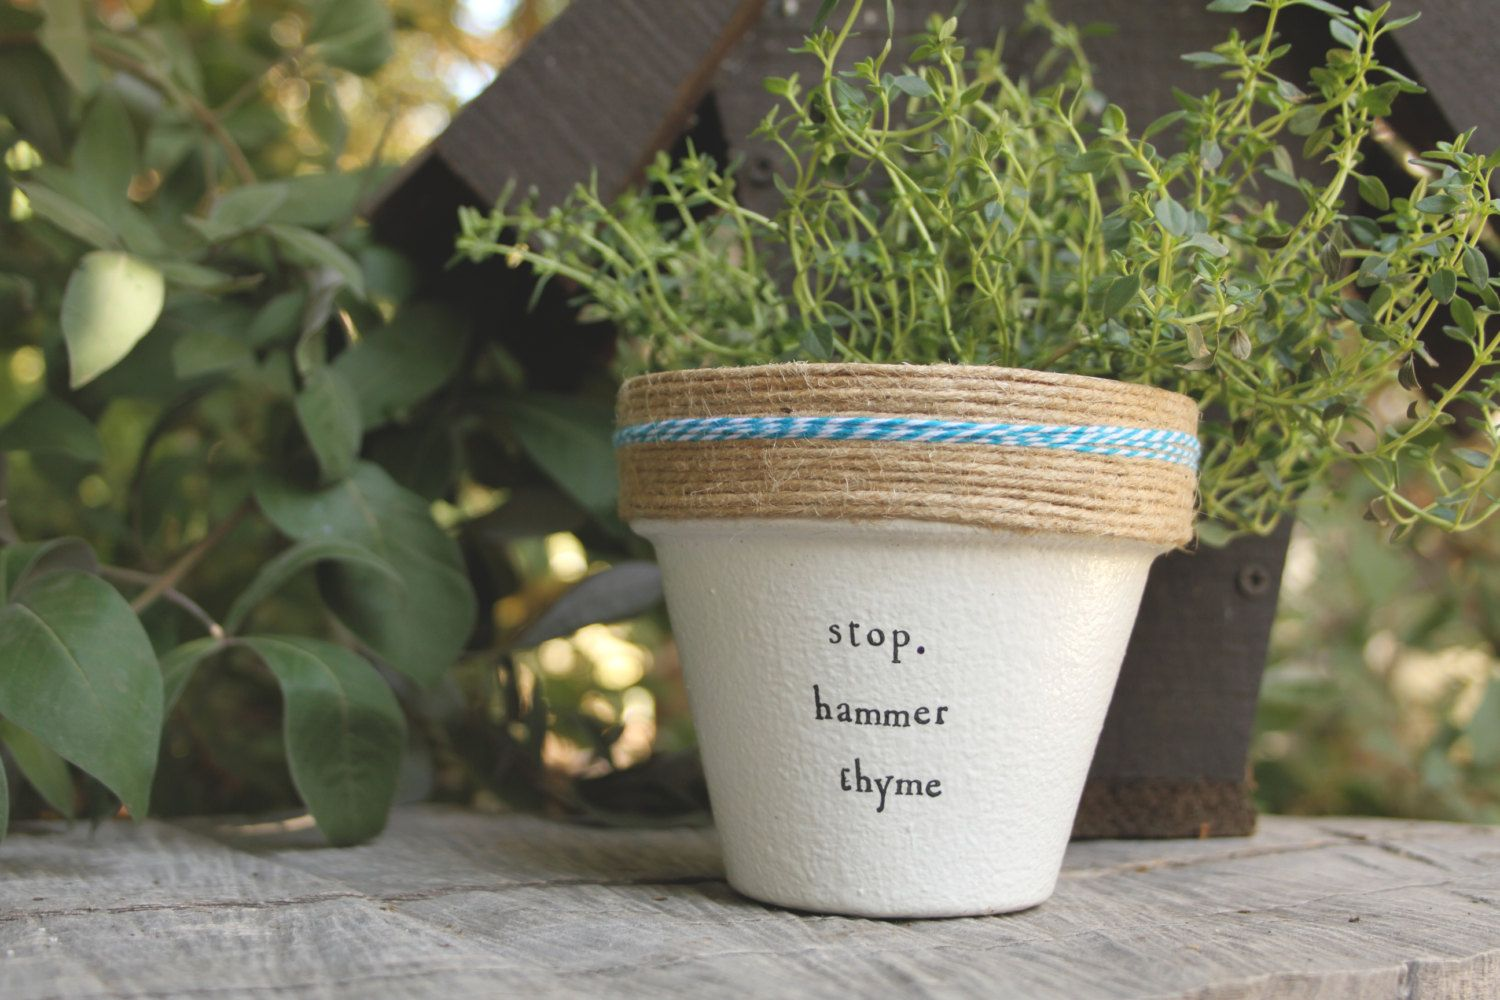 Hammer Thyme By Plantpuns On Etsy With Images Plant Puns